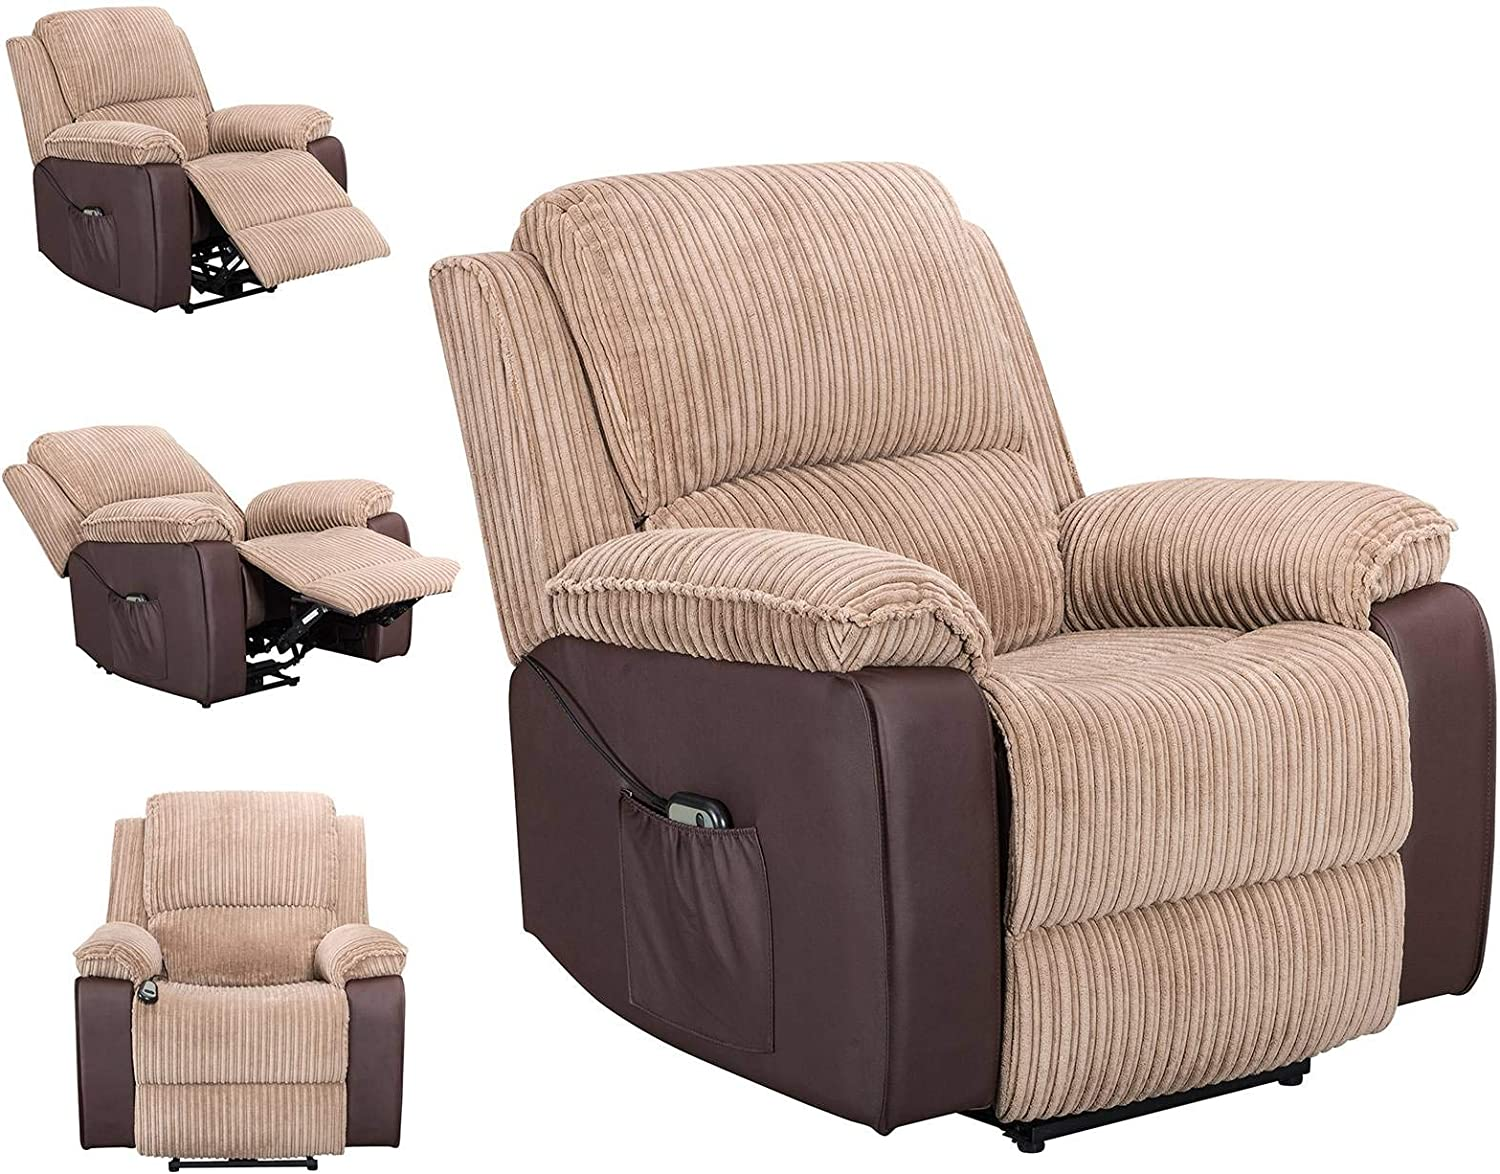 Upholstered Fabric Leather Electric Reclining Lounge Sofa Recliner Armchair Home